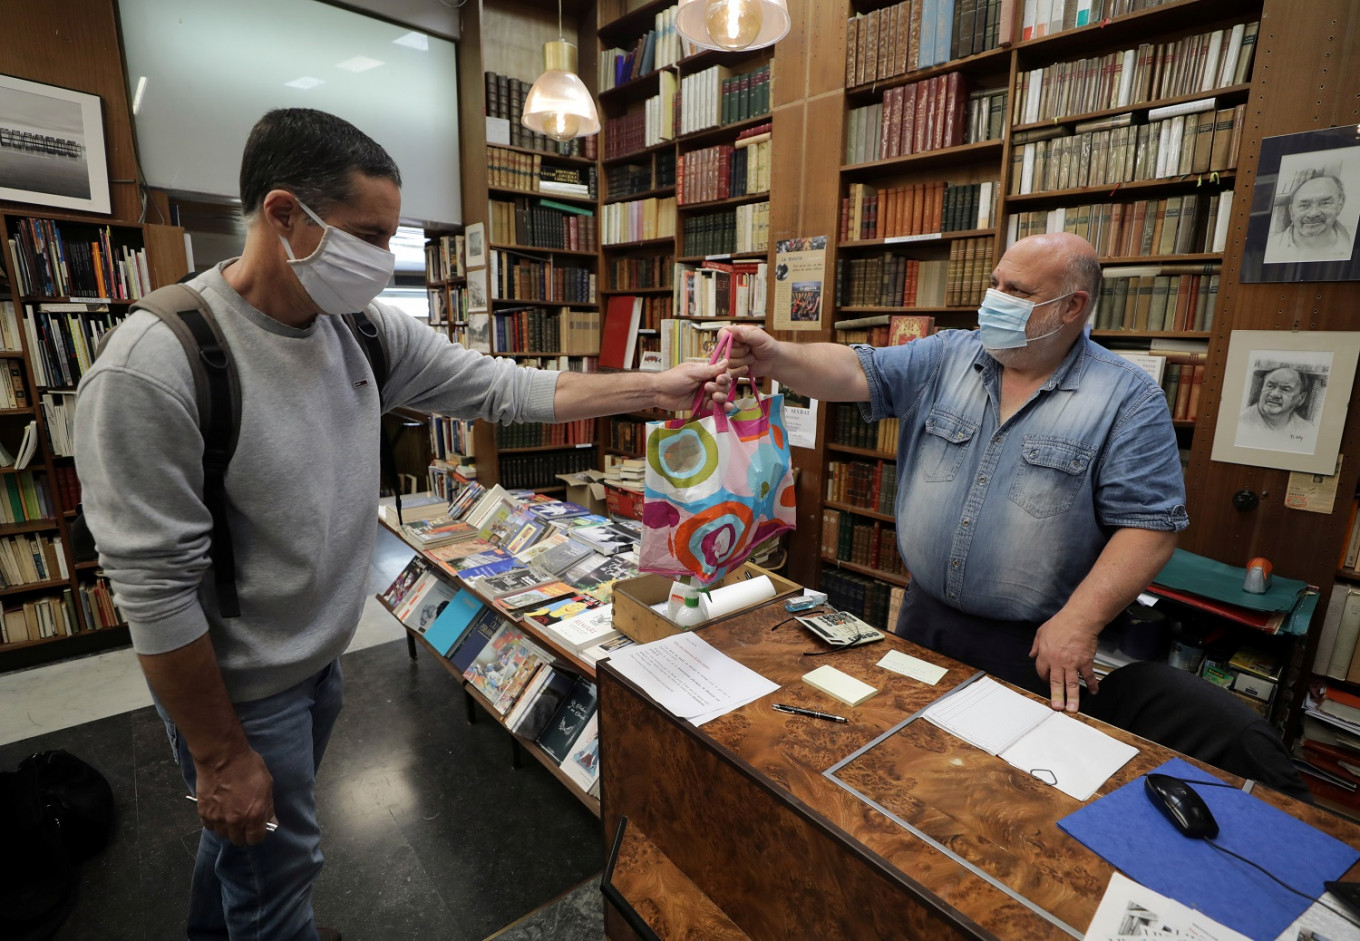 France's bookstores fight for survival after coronavirus lockdown